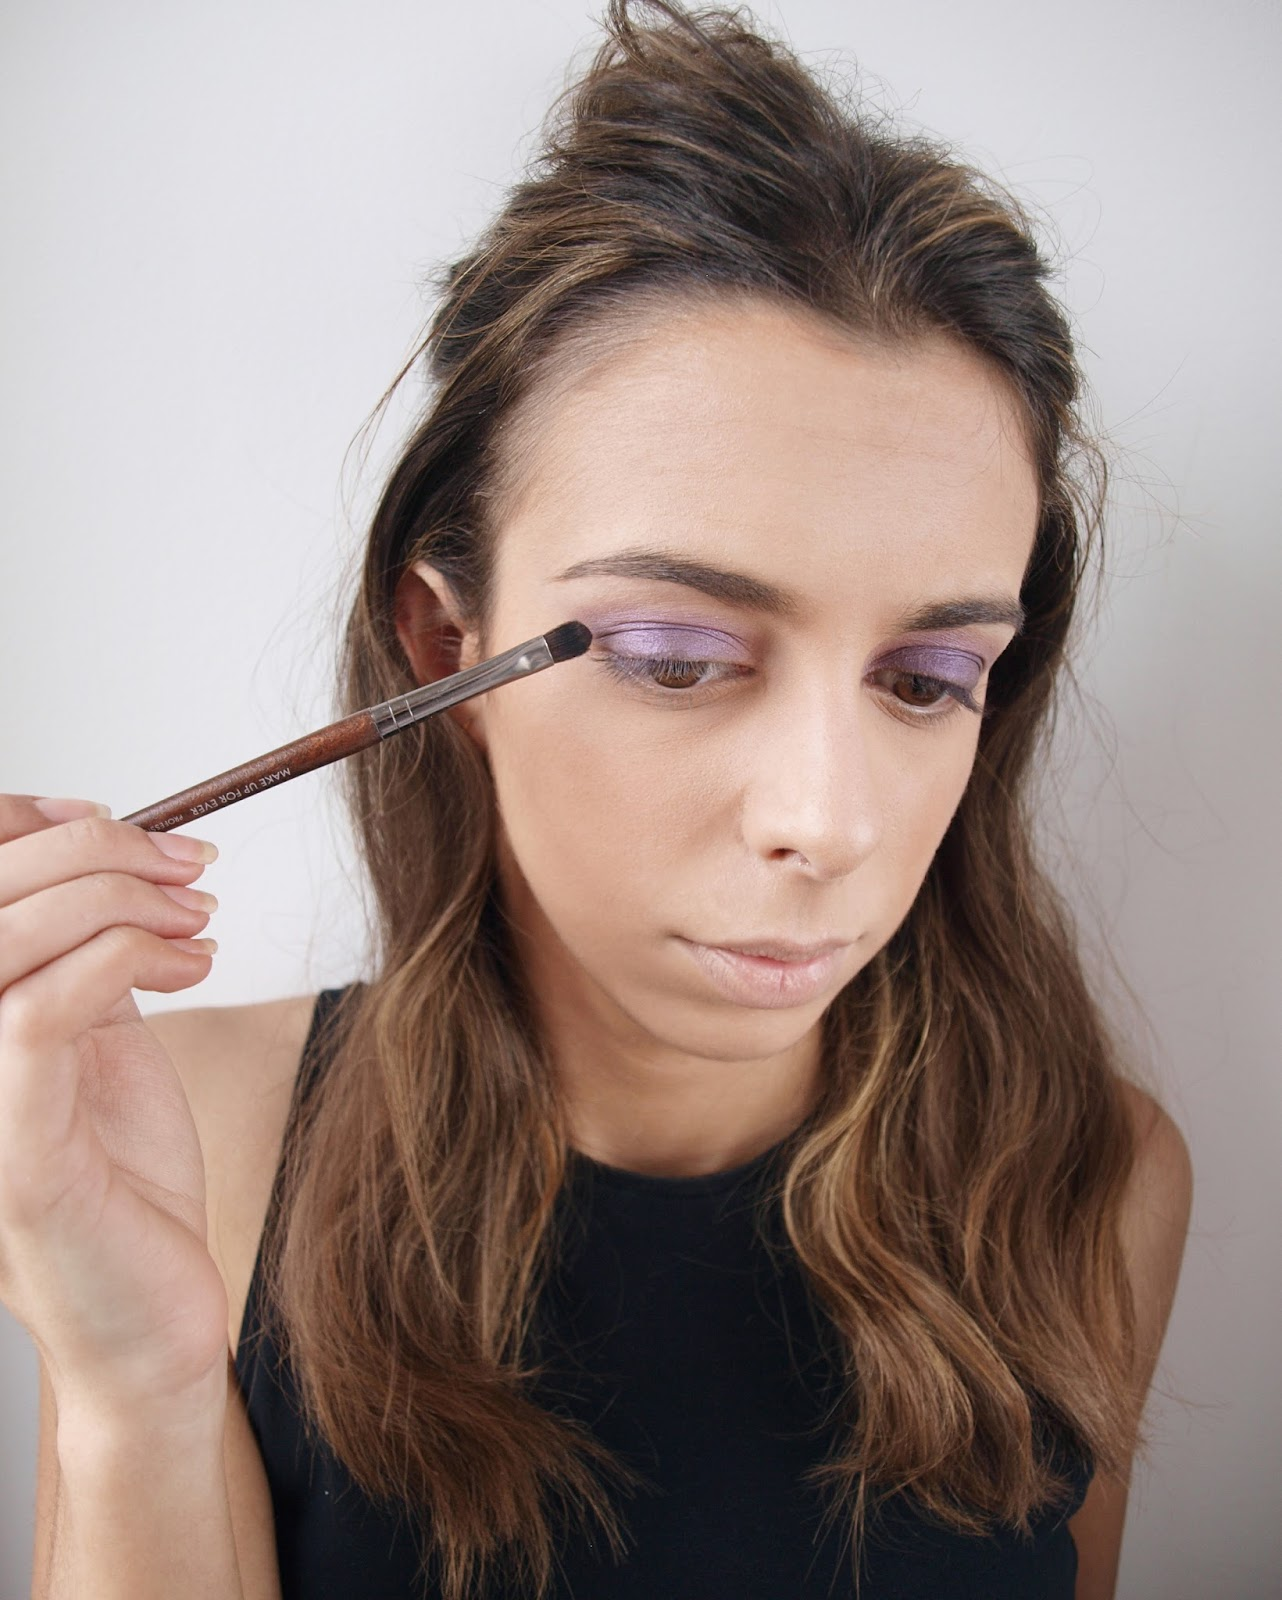 coastalandco-makeup-purplesmokeyeye-maquillage-maquillaje-tutorial-tutoriel-hendaye-girl-fashion-blog-blogger